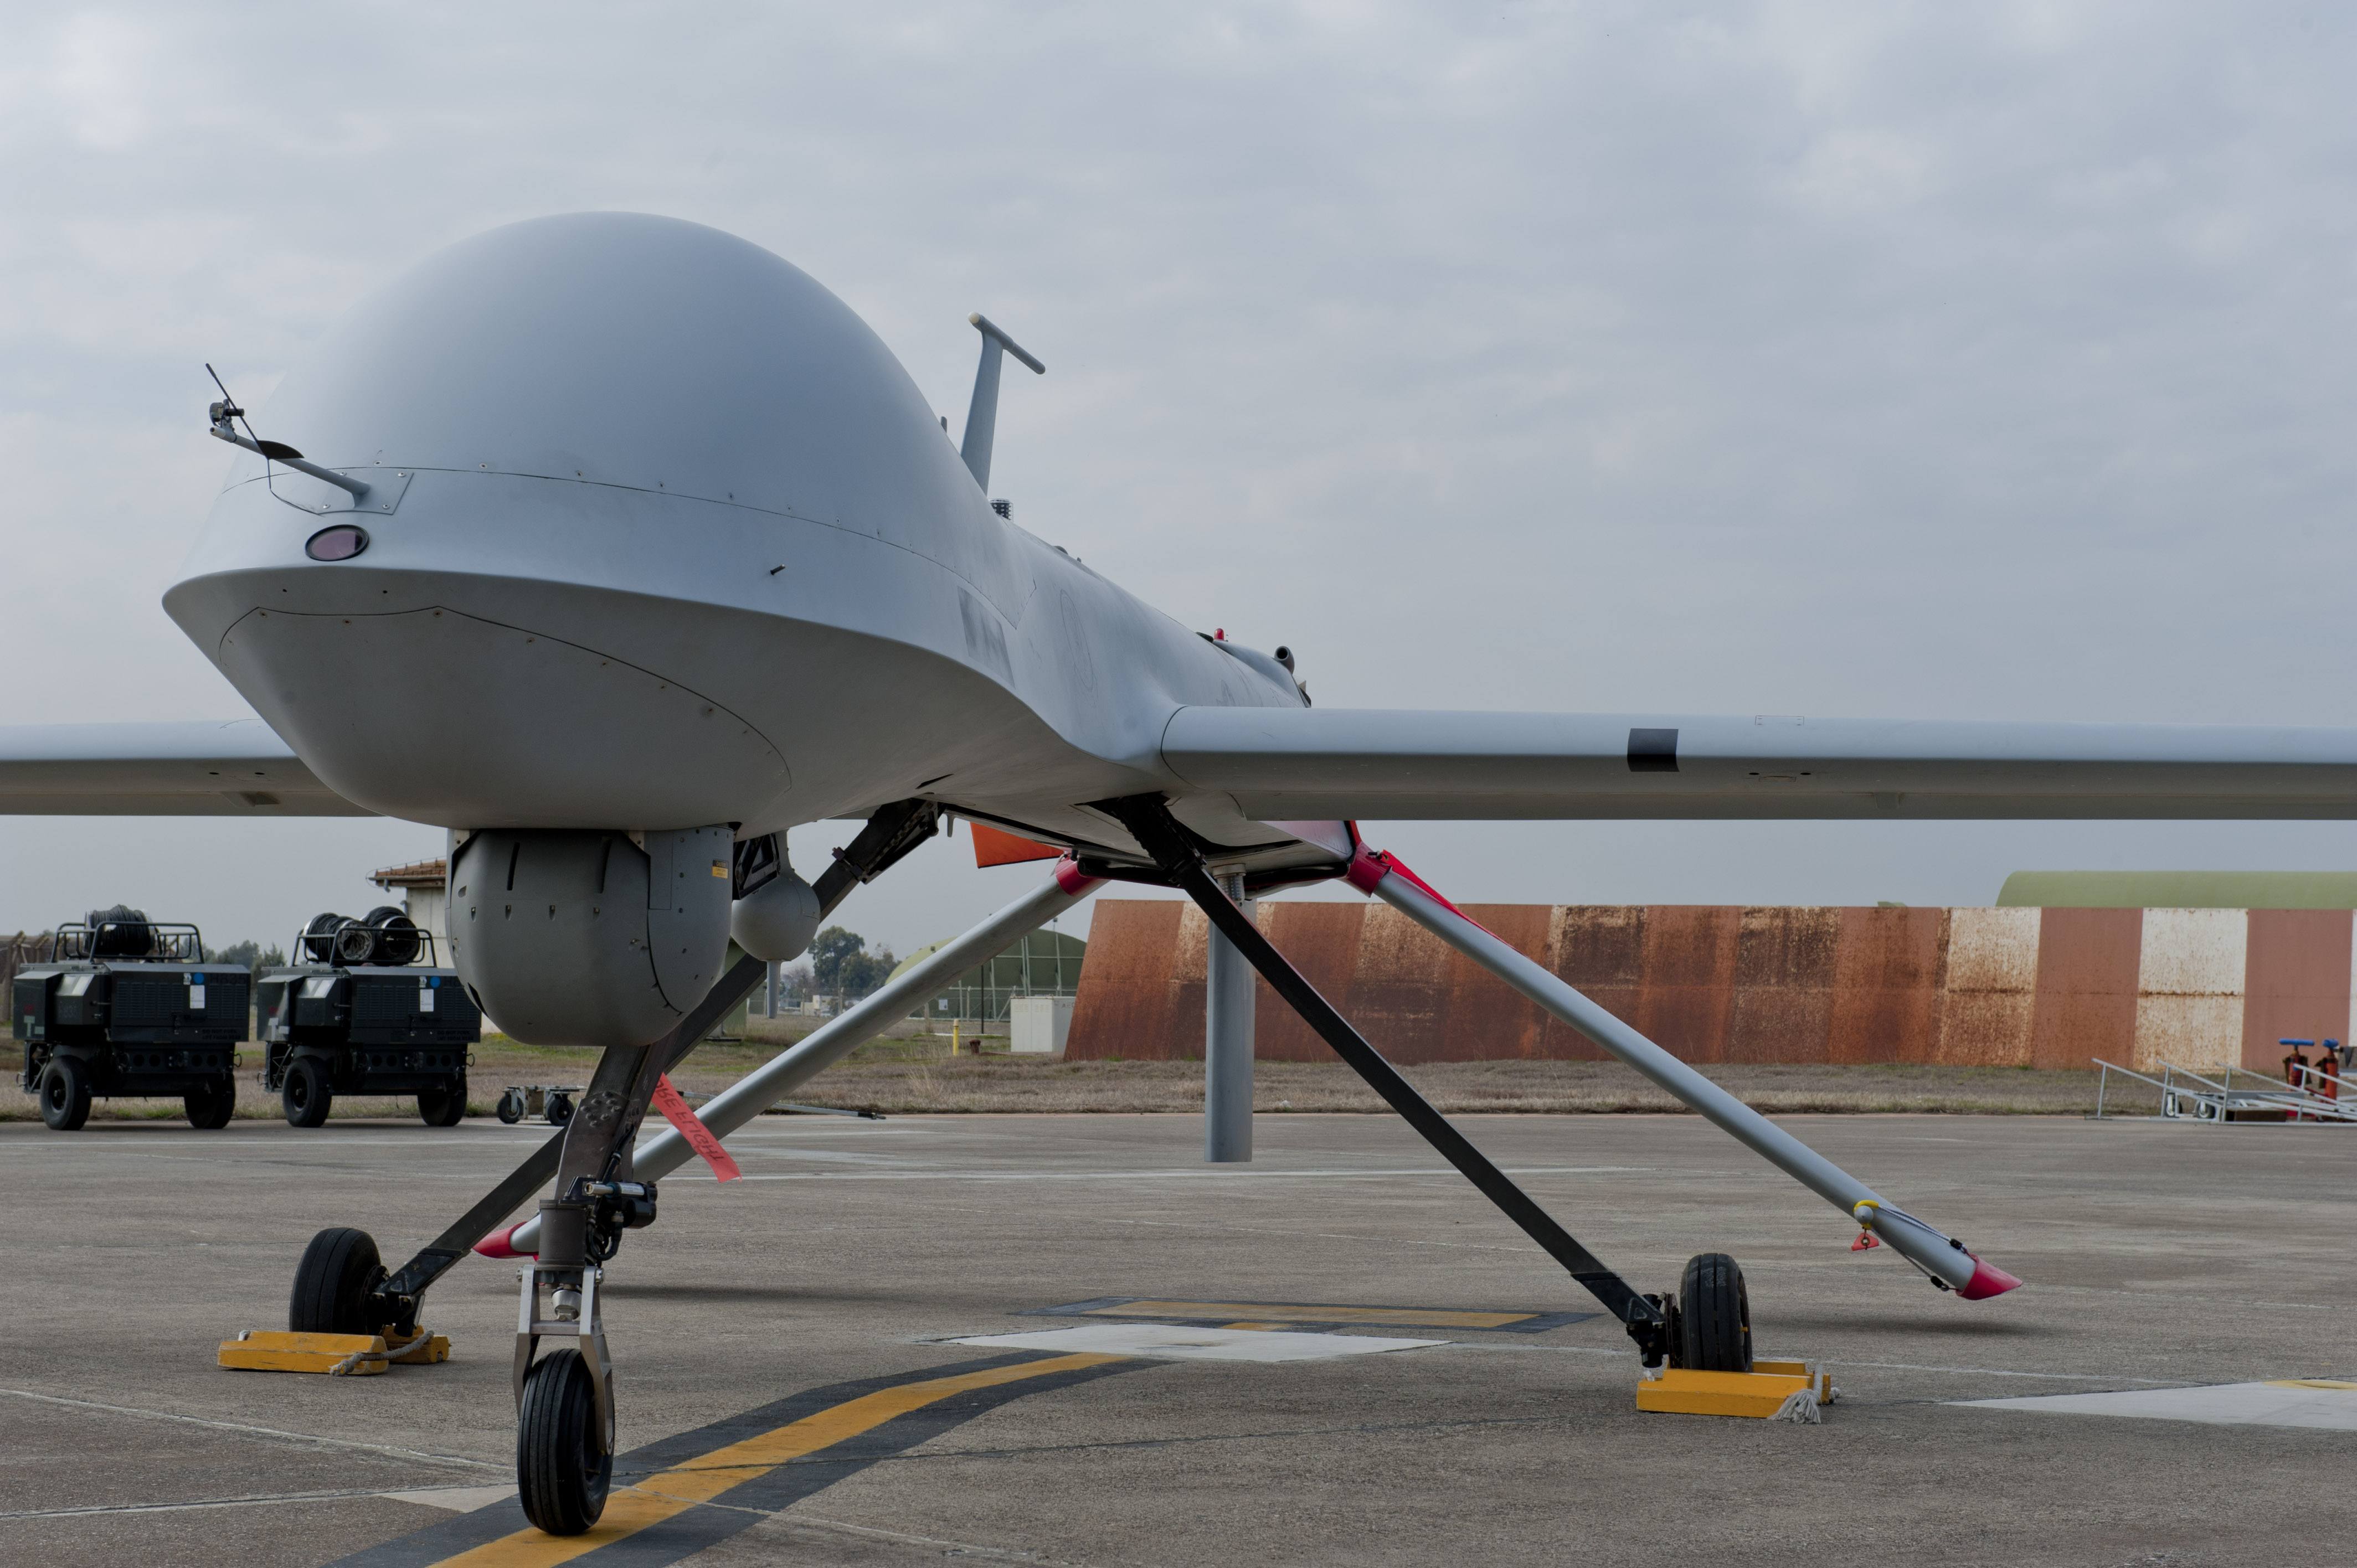 Frontex testing drone technology